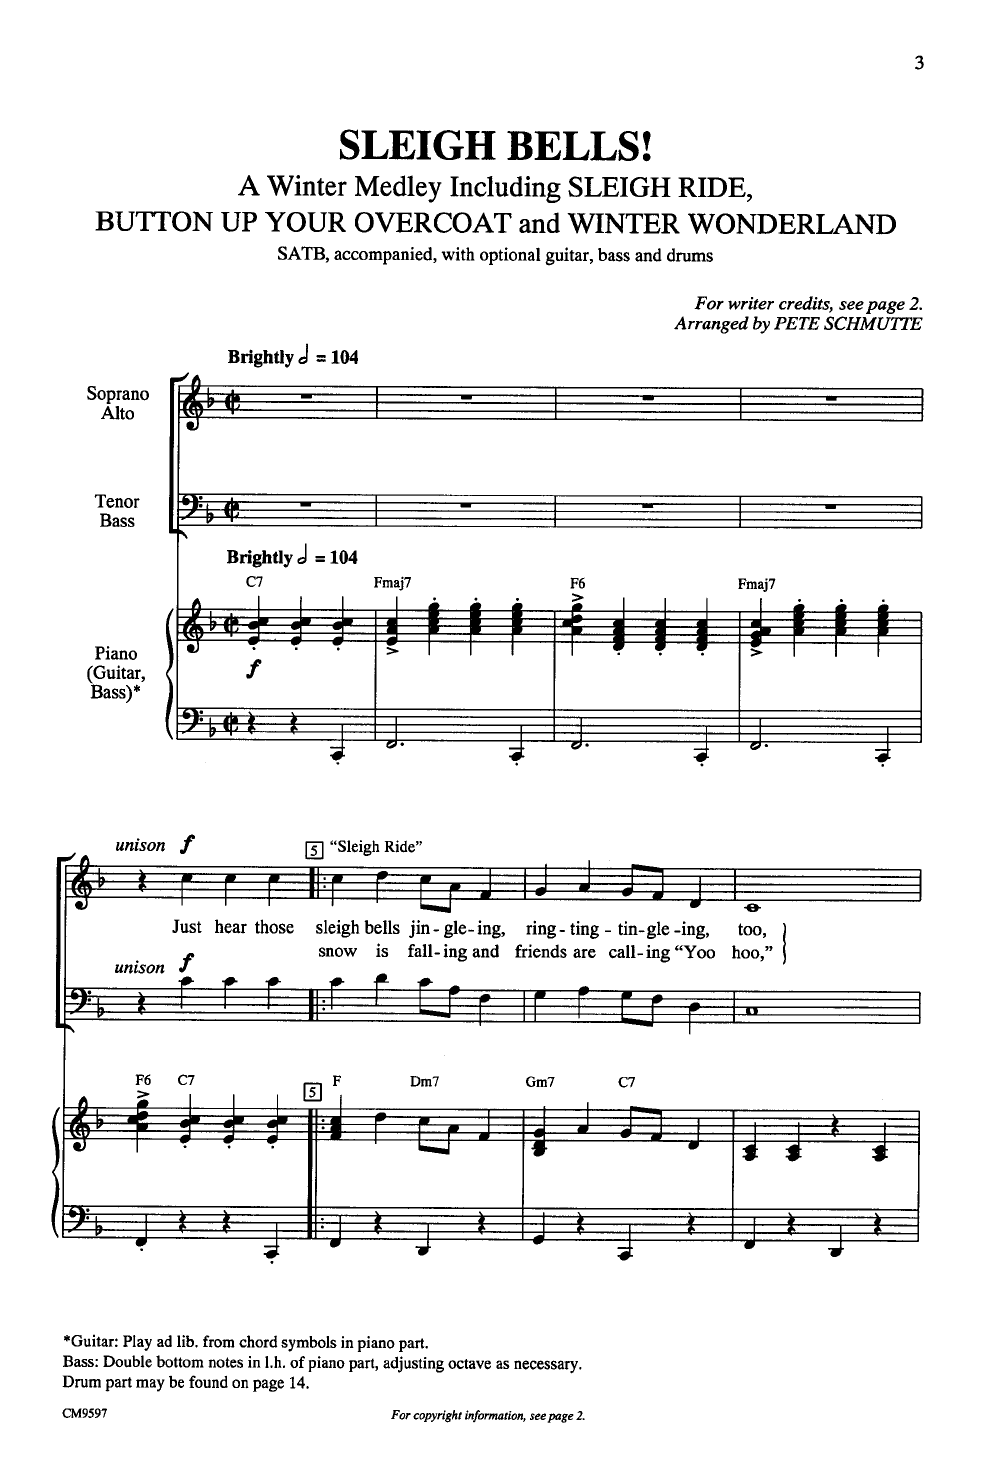 Sleigh Bells Satb Arr Pete Schmutte Jw Pepper Sheet Music